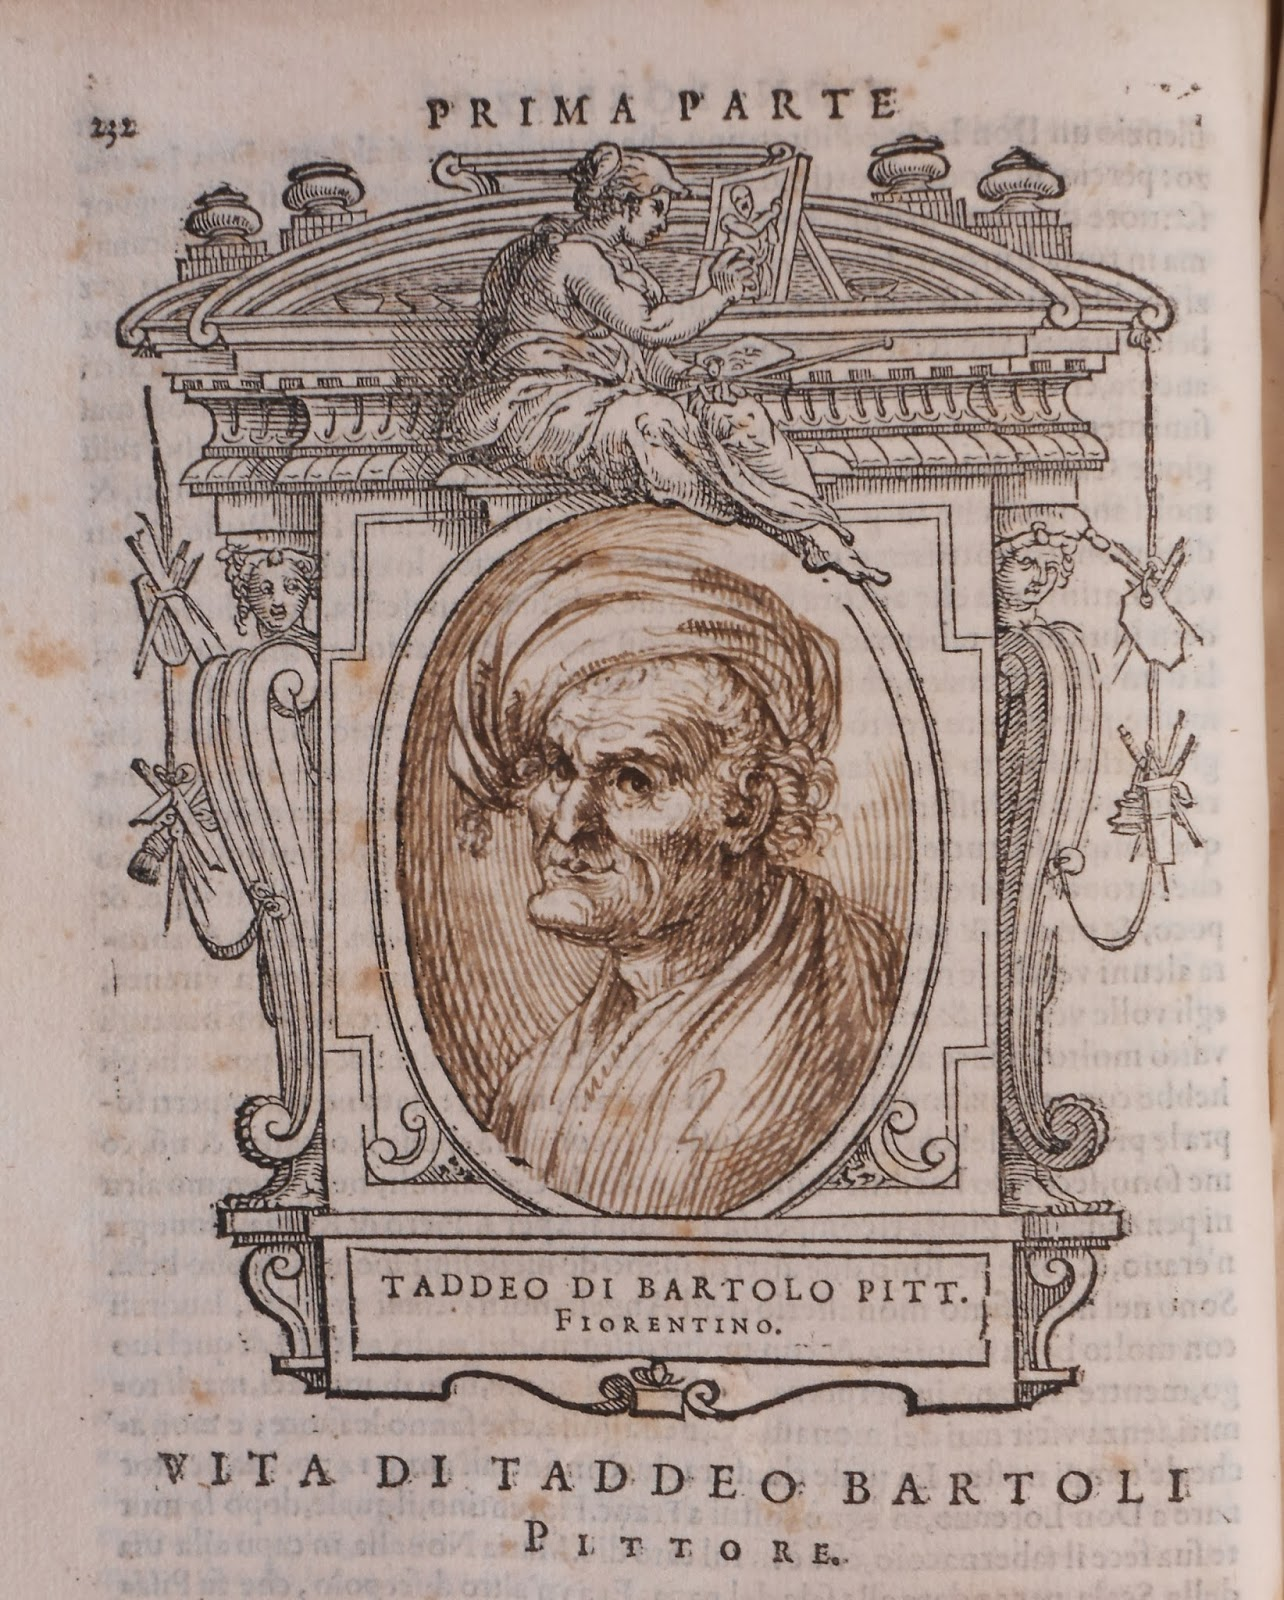 A medallion frame containing a pen sketch of an older man in a hat.